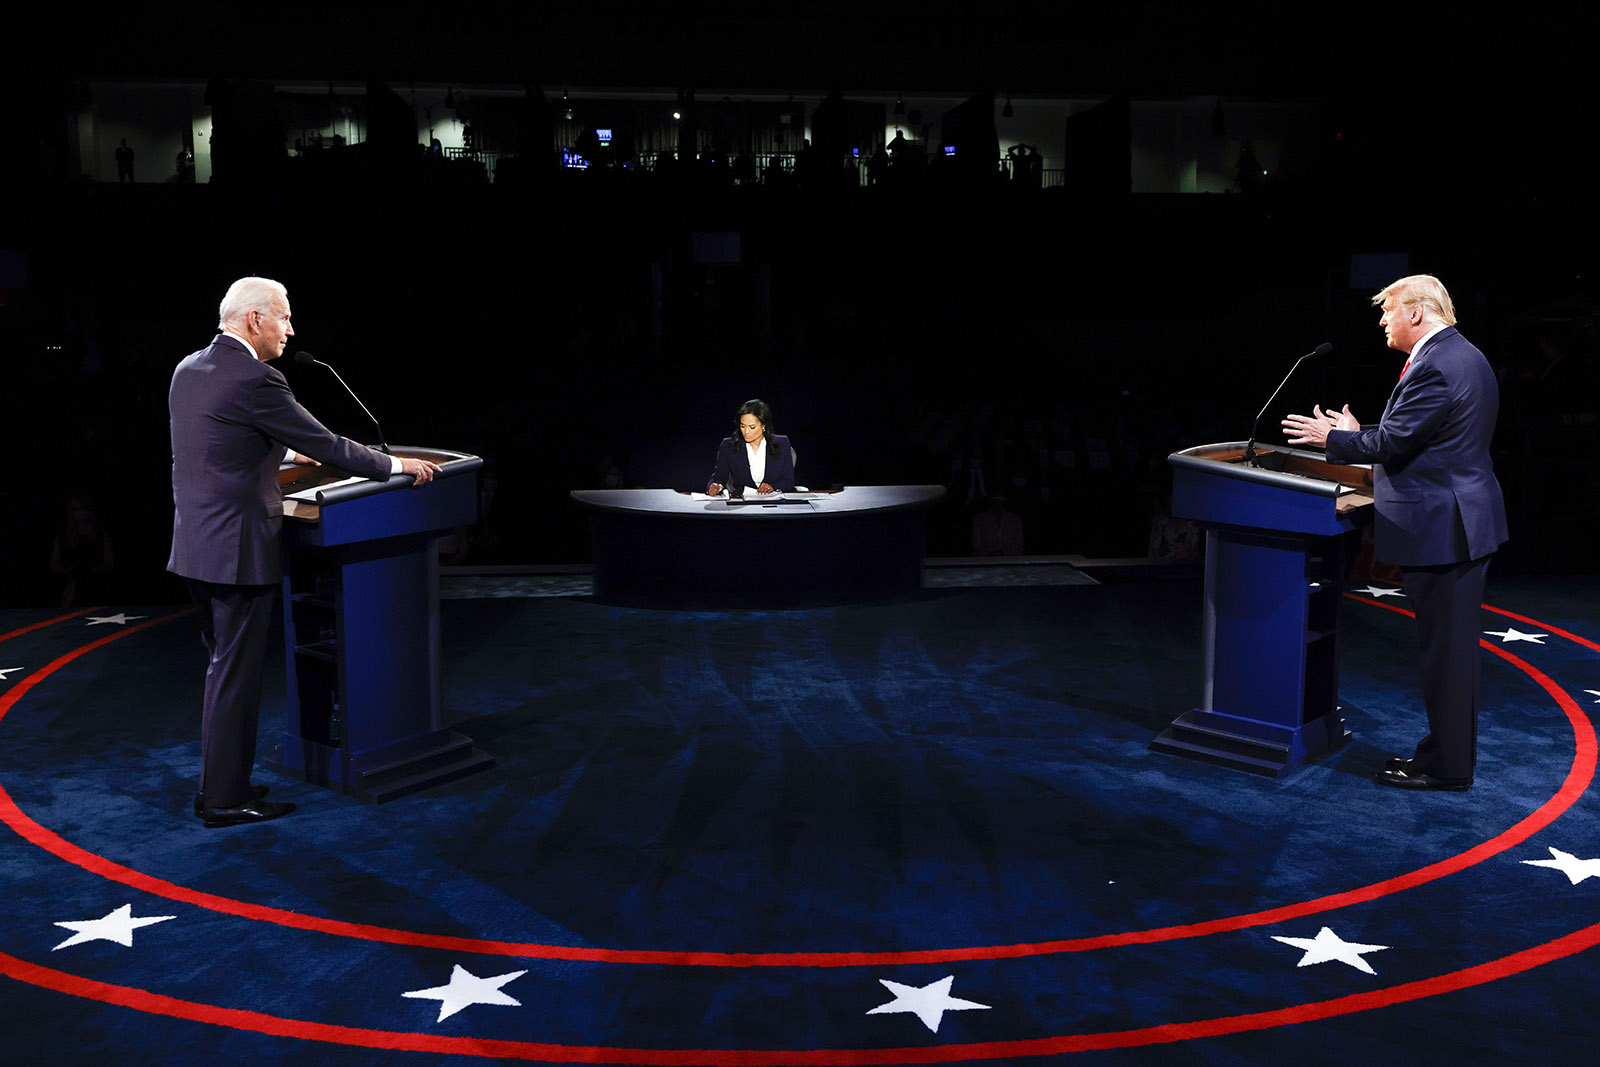 President Donald Trump and Democratic presidential candidate Joe Biden participate in the final presidential debate at Belmont University on Thursday in Nashville.